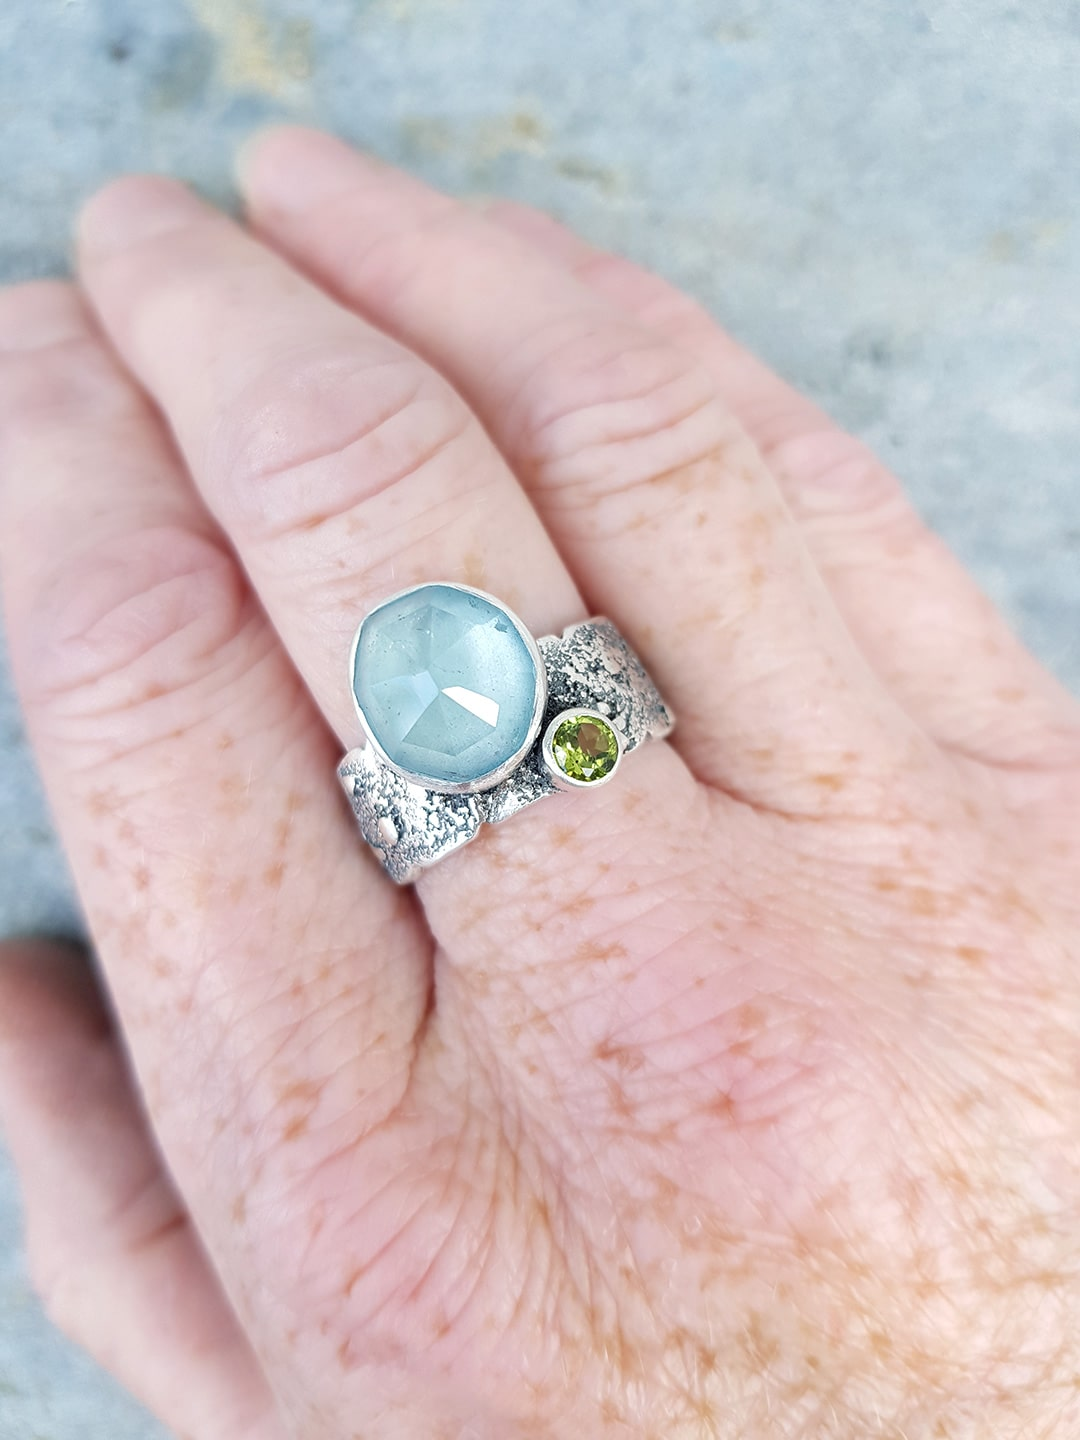 Wearing handmade aquamarine ring in textured sterling silver